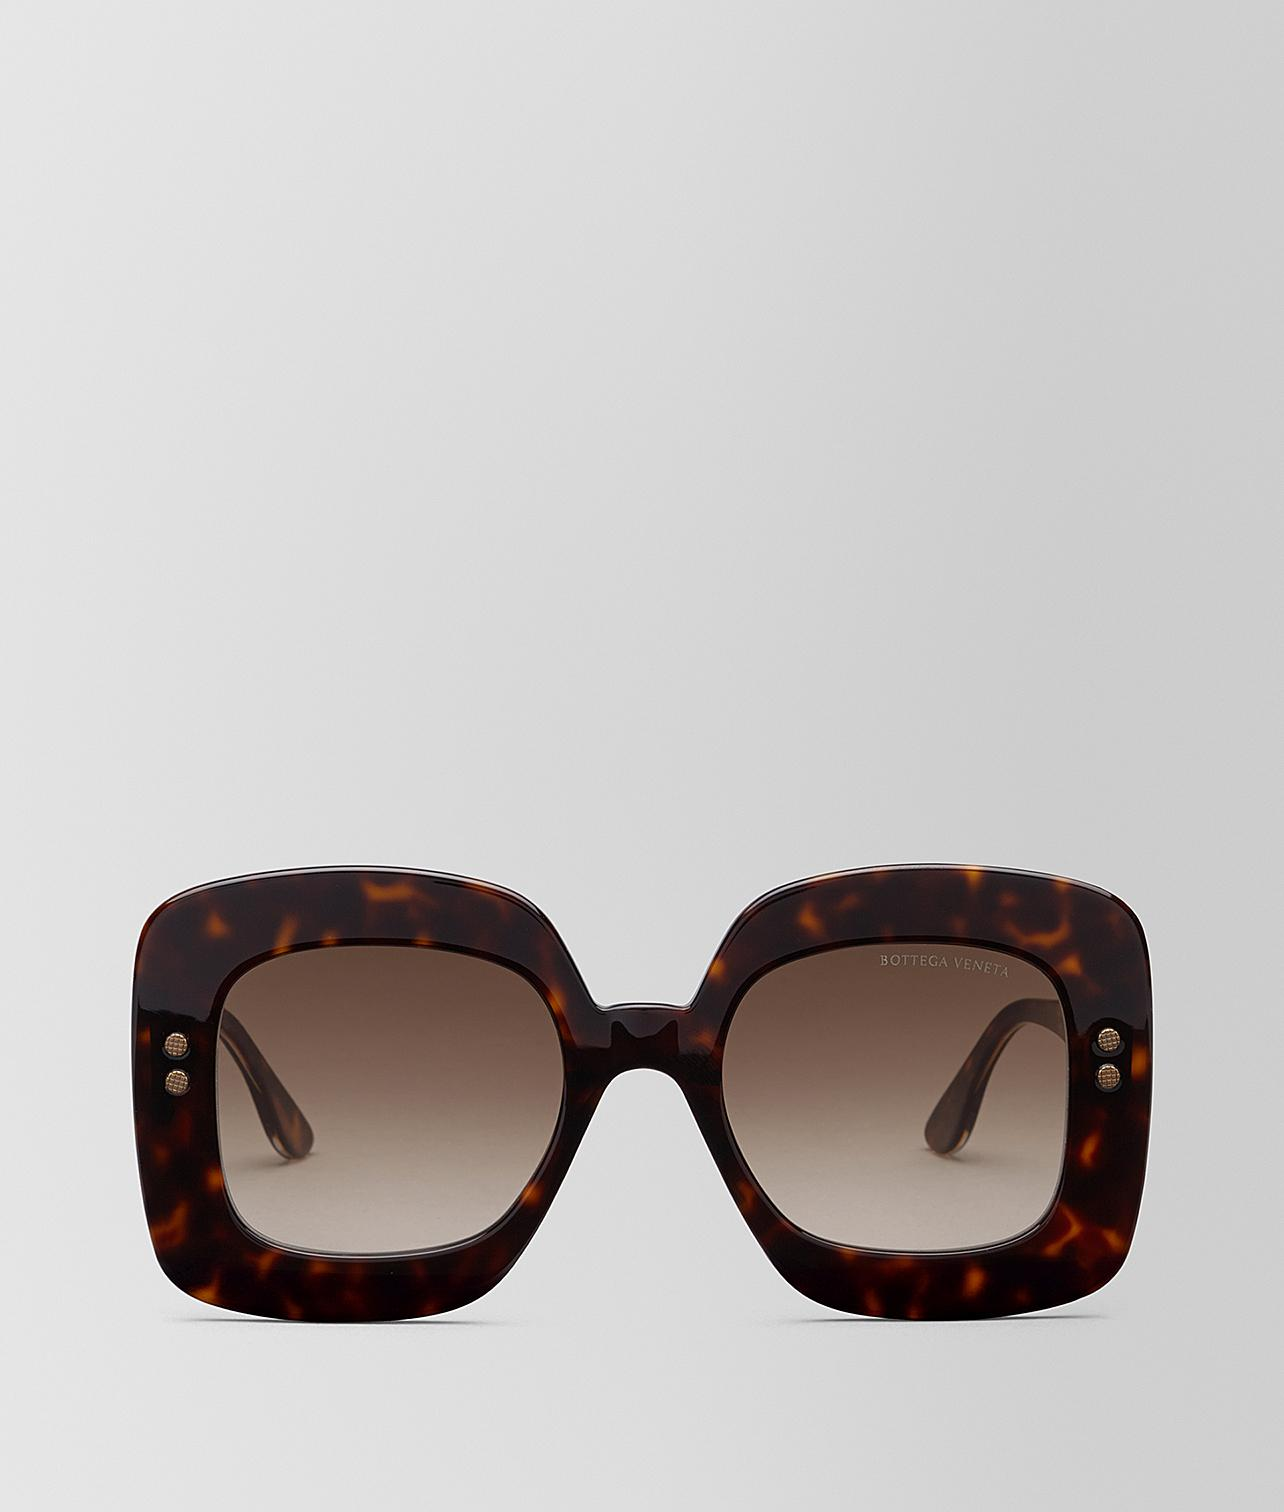 398180155ad Bottega Veneta - Brown Sunglasses - Lyst. View fullscreen